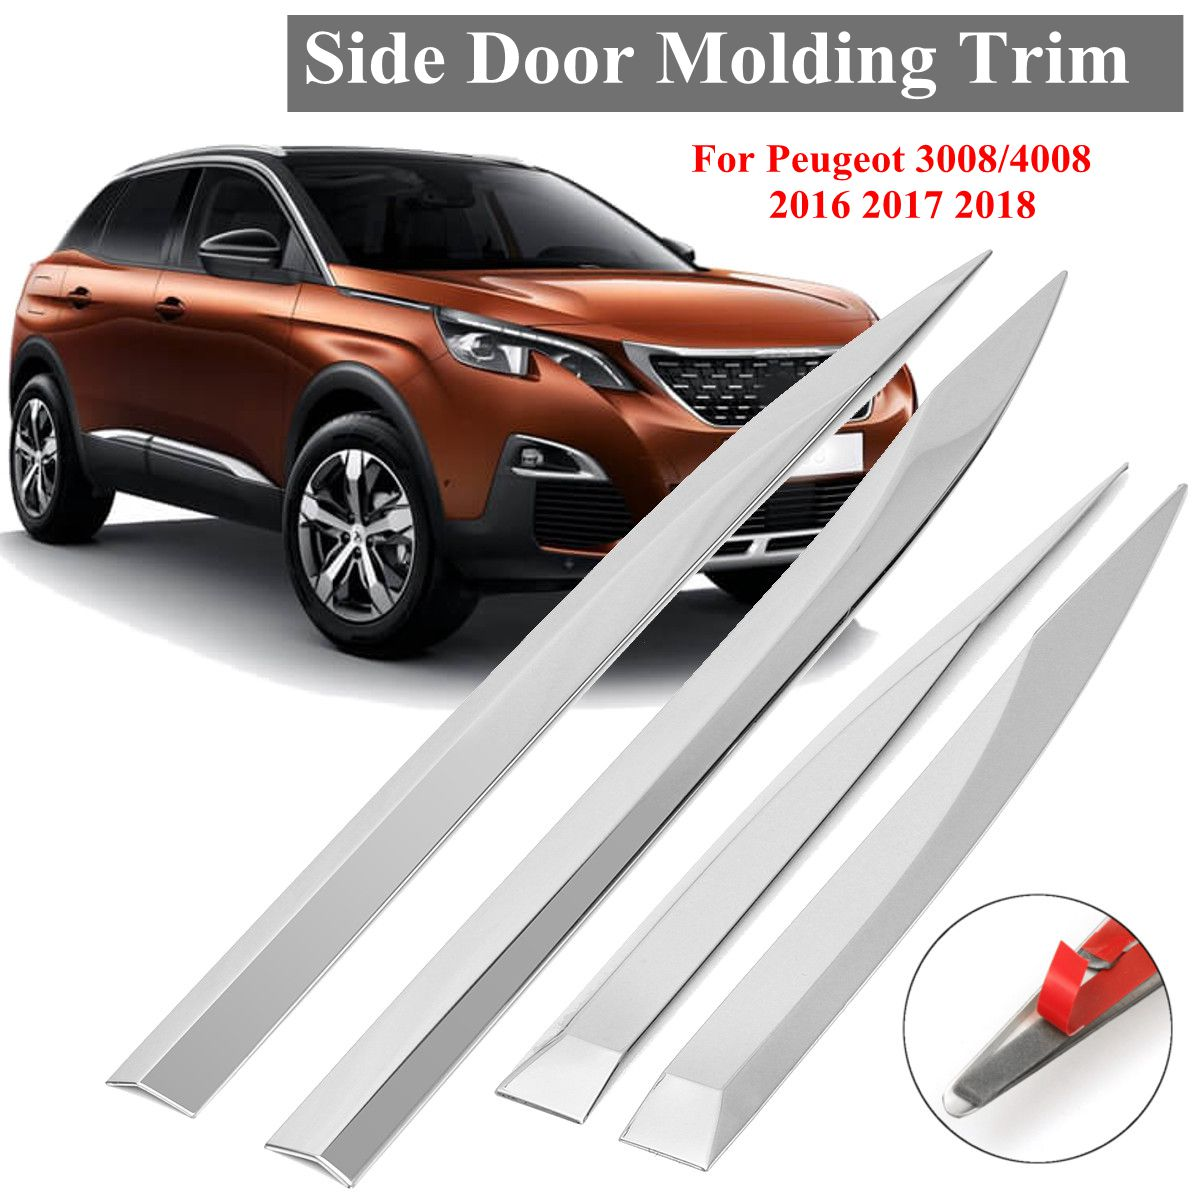 4X Car Door Body Chrome Side Molding Protector Trim Stainless Steel Sticker Strips For <font><b>Peugeot</b></font> <font><b>3008</b></font> 4008 <font><b>2016</b></font> 2017 2018 image